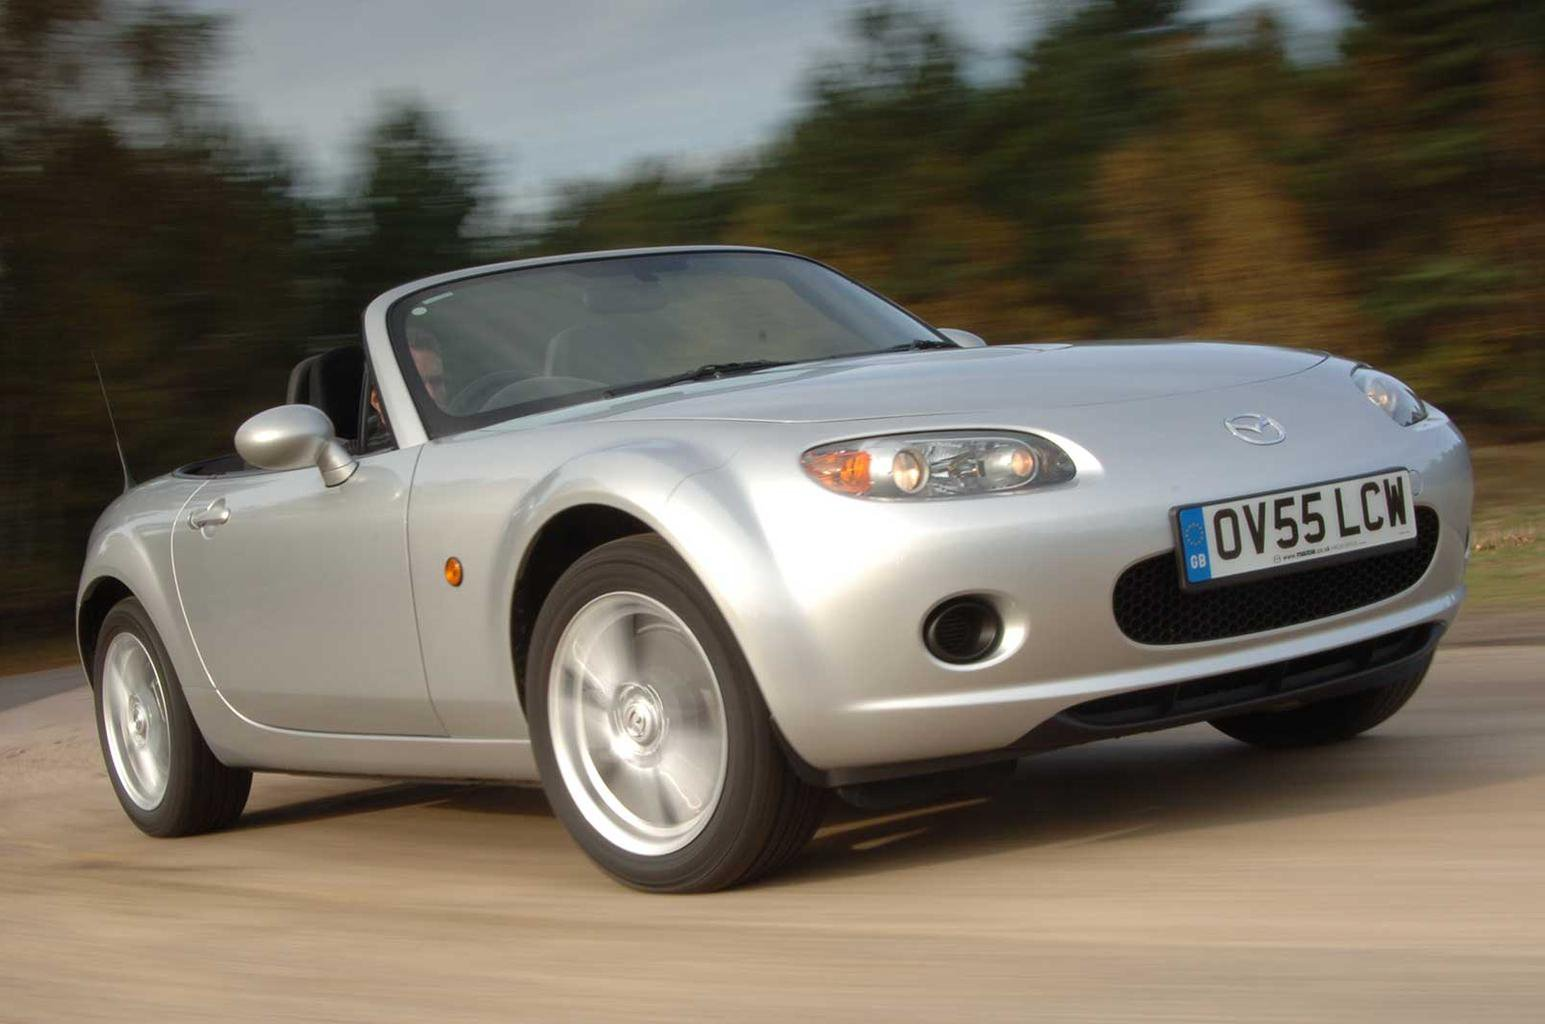 10 reasons to buy a Mazda MX-5